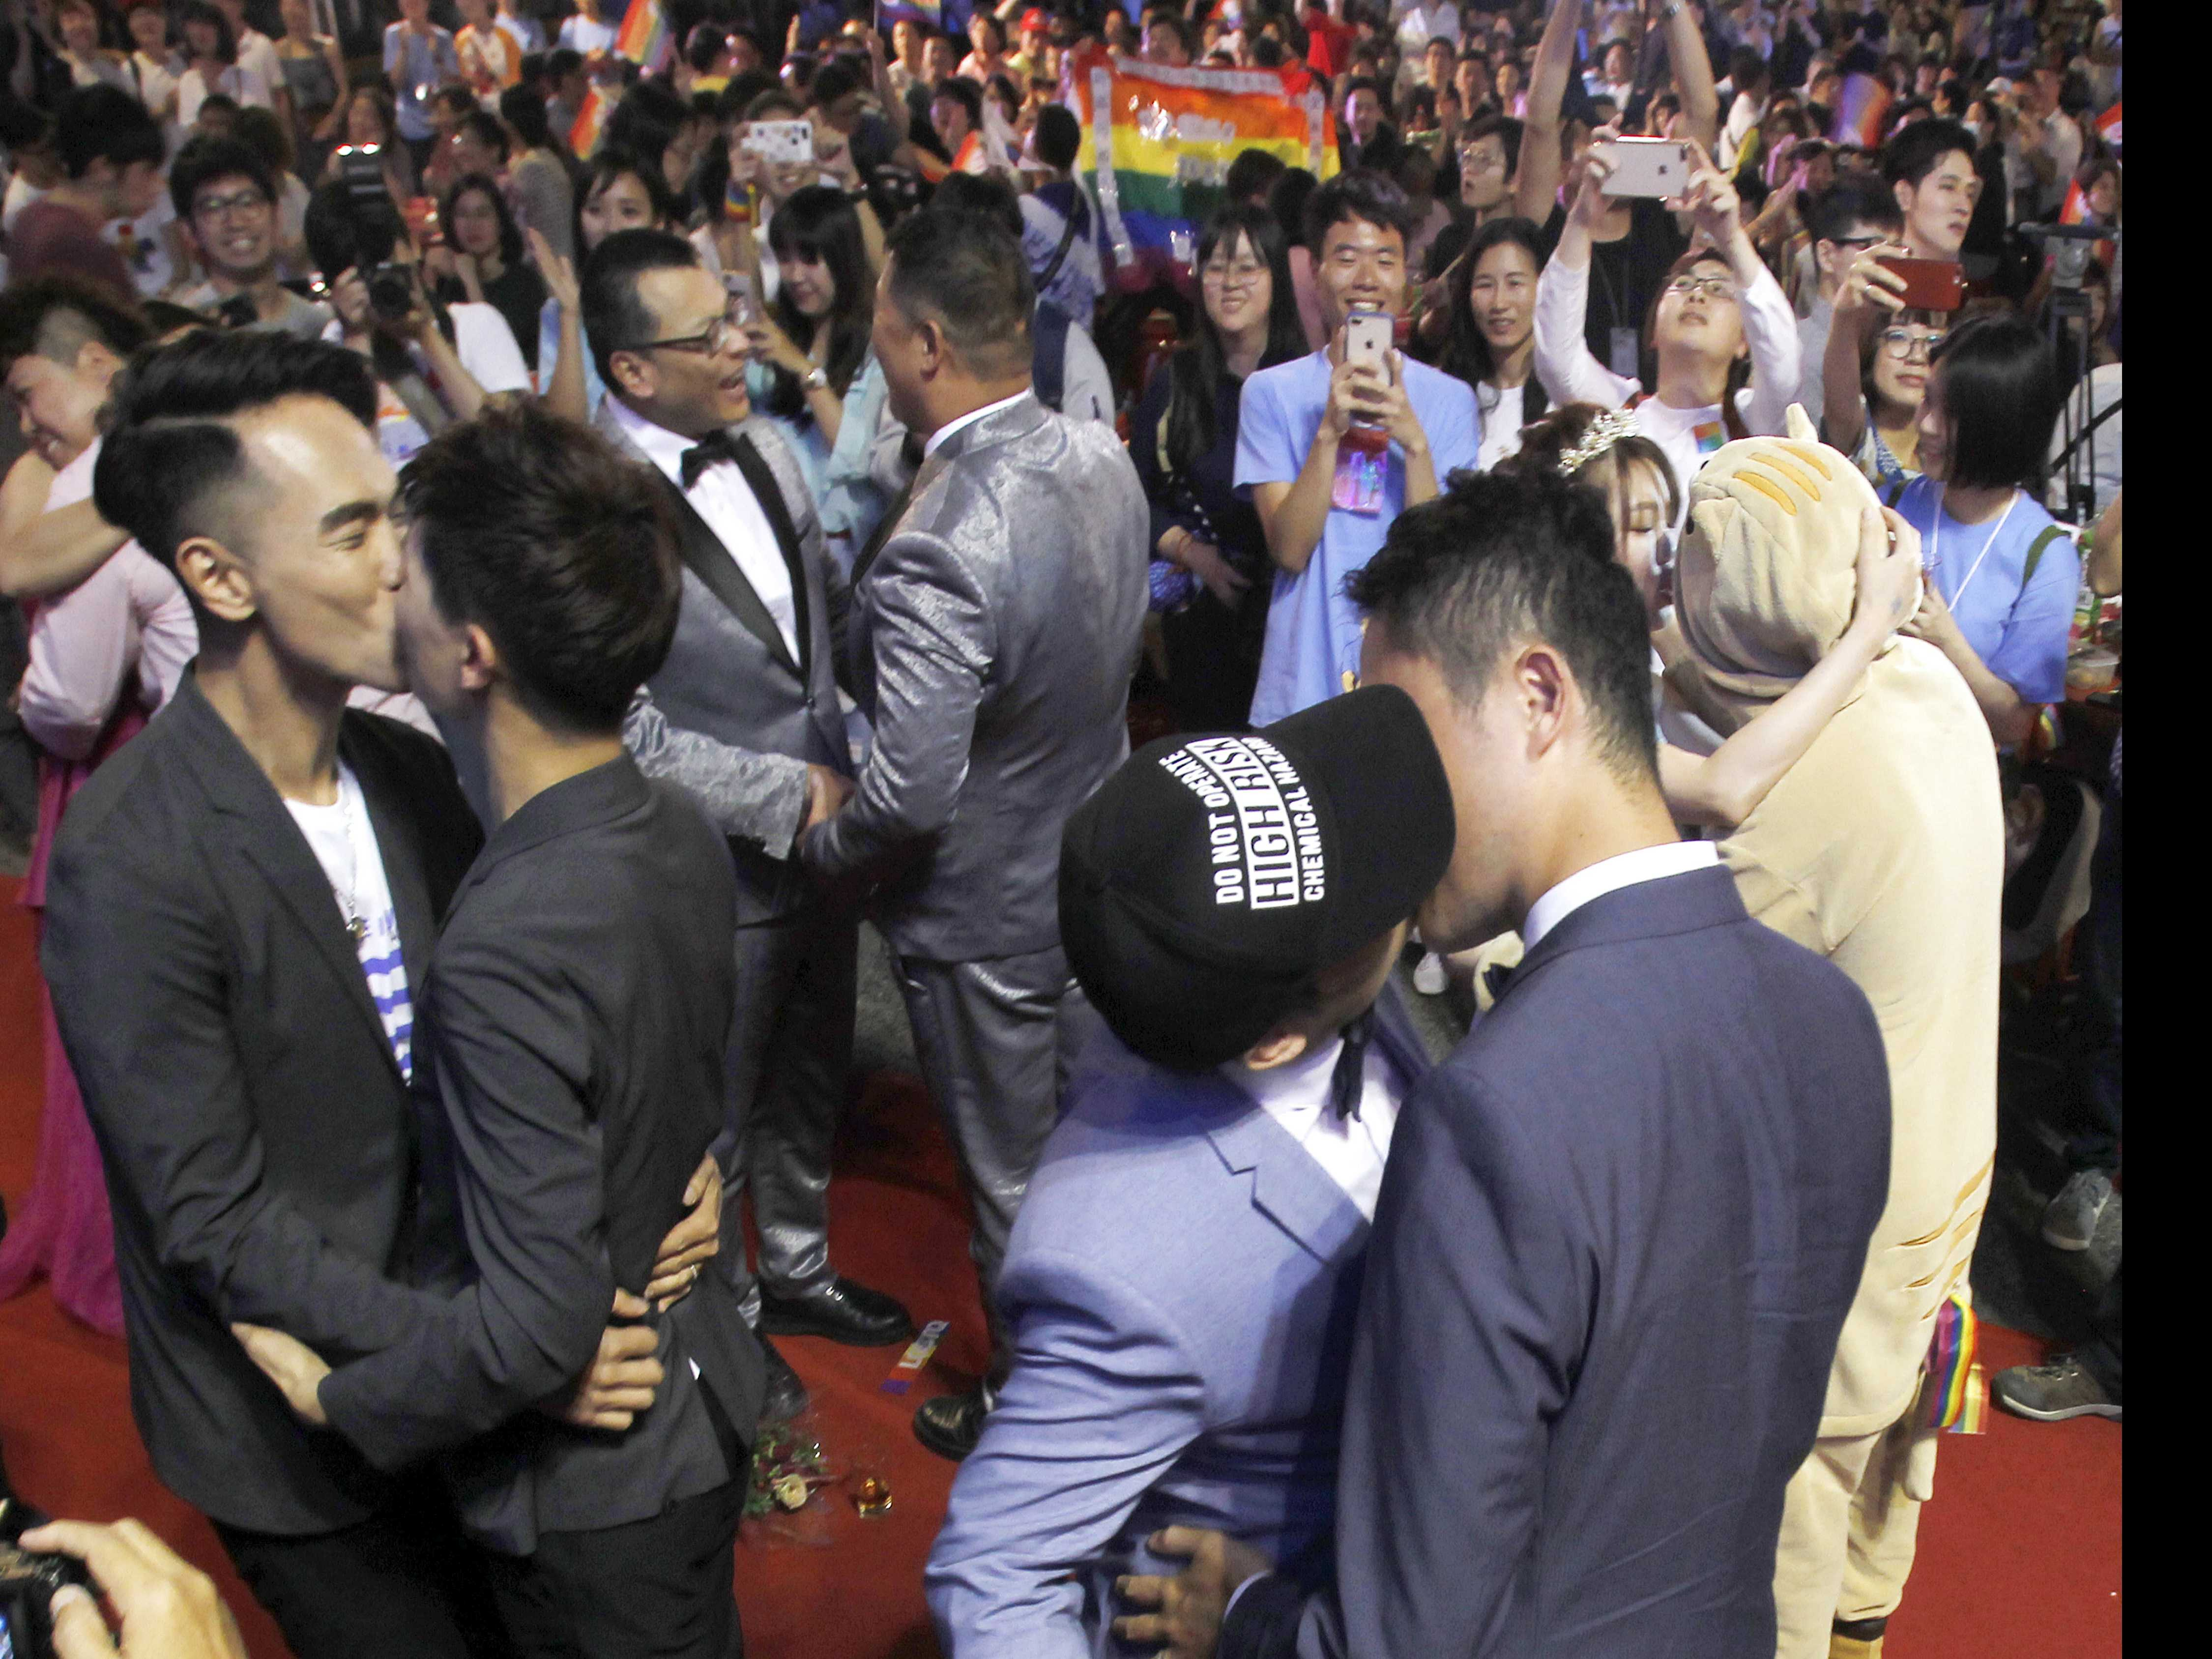 Taiwanese Same-Sex Couples Wed at Vibrant Banquet